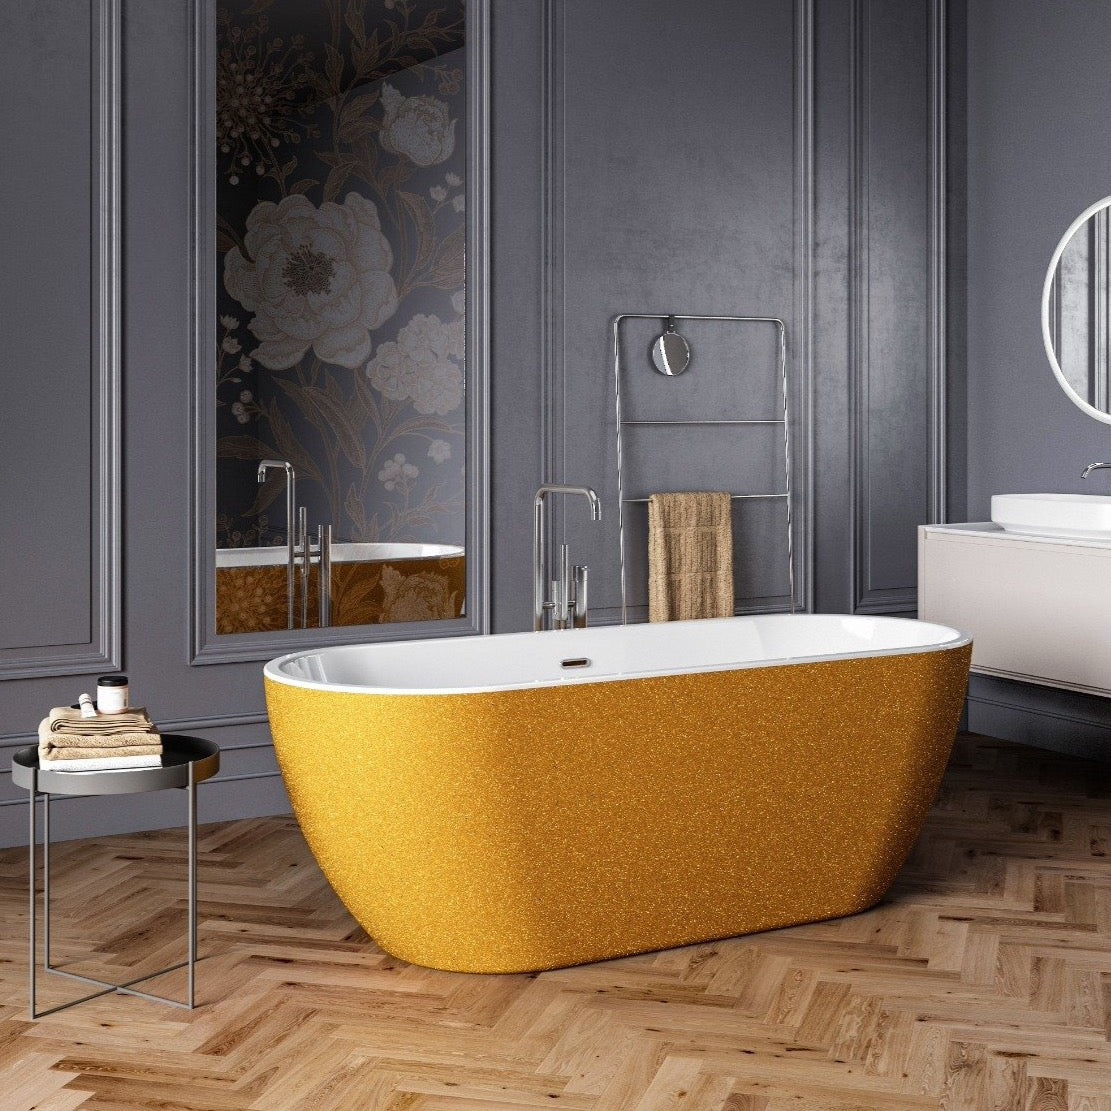 Charlotte Edwards Sparkling Gold 1690mm Belgravia Contemporary Freestanding Bath